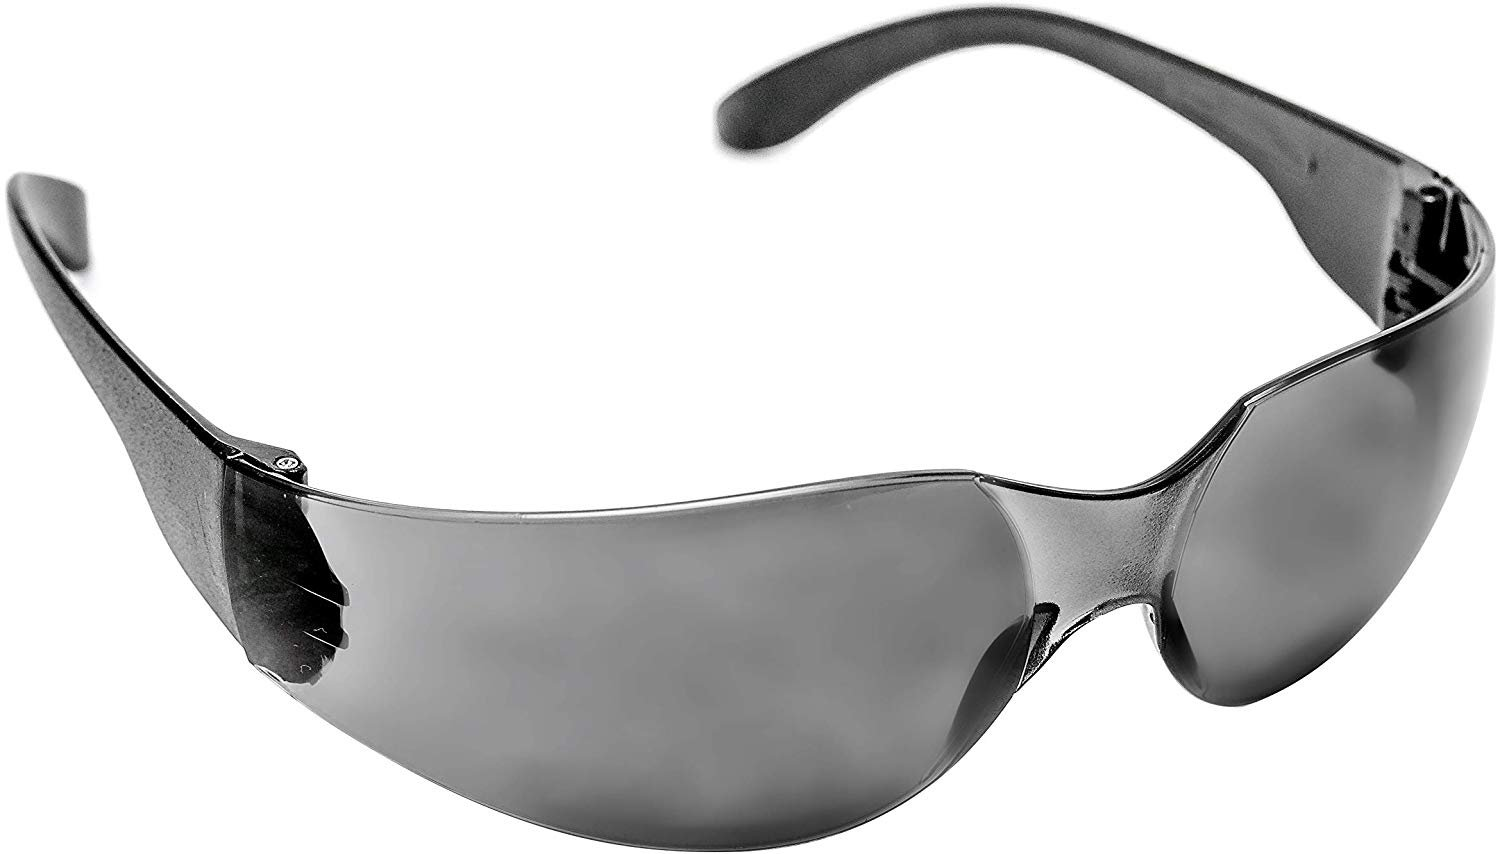 ANSI Anti-Fog Scratch-Resistant High-Impact SHADE Safety Glass FREE SHIPPING